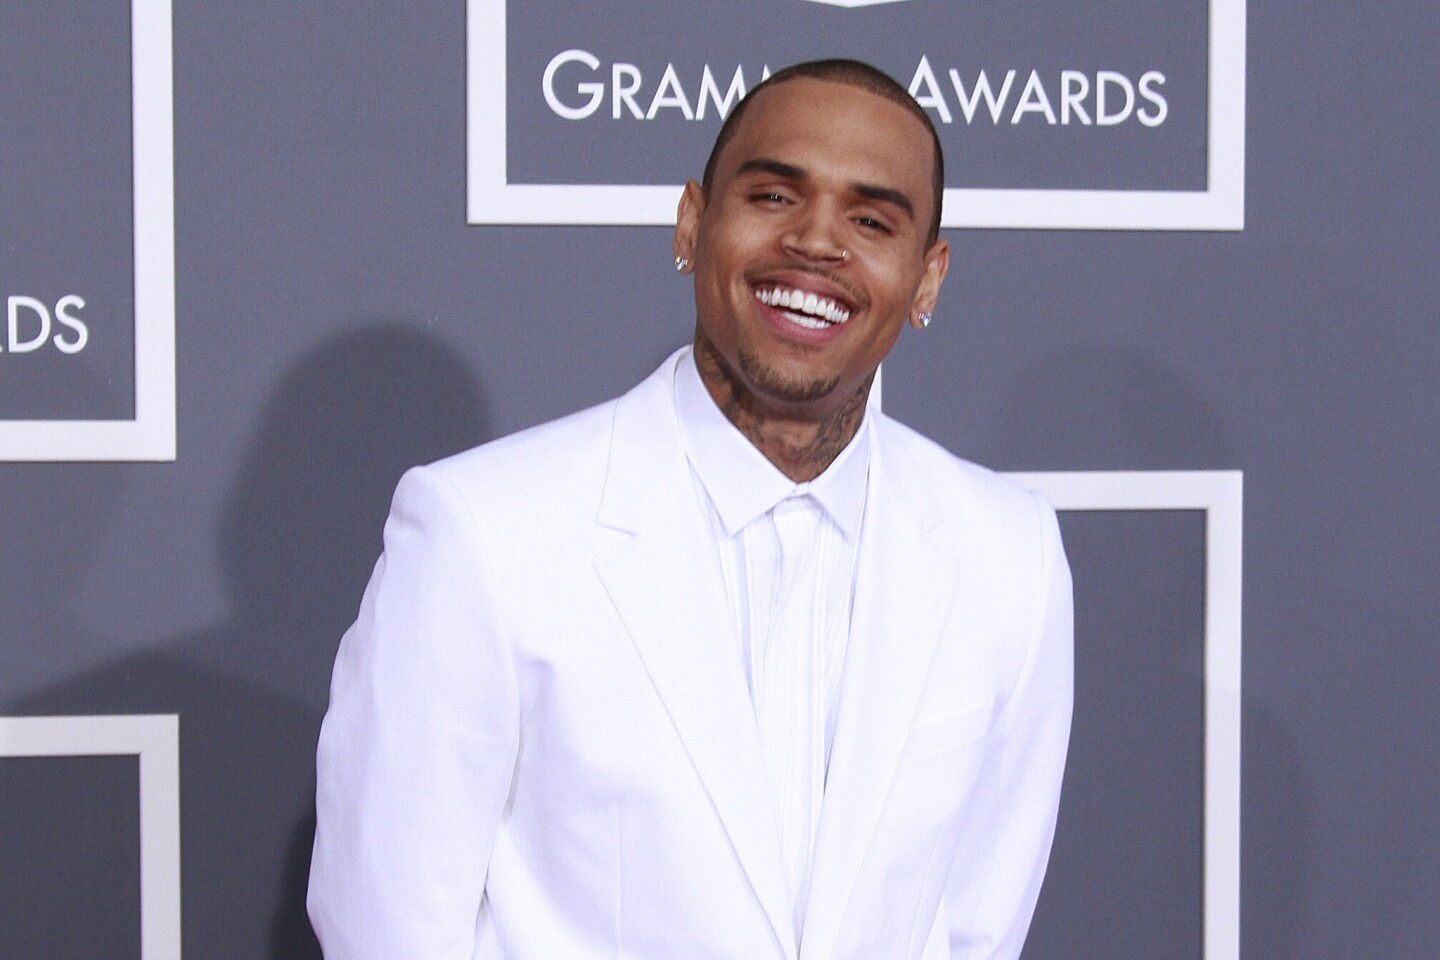 Chris Brown's name evokes controversy these days, so it's easy to forget that he once had a role model image. From high school crooner to R&B star both idolized and vilified, here's a brief look at Chris Brown's life and career. Pictured: Chris Brown at the Grammy Awards in 2013.